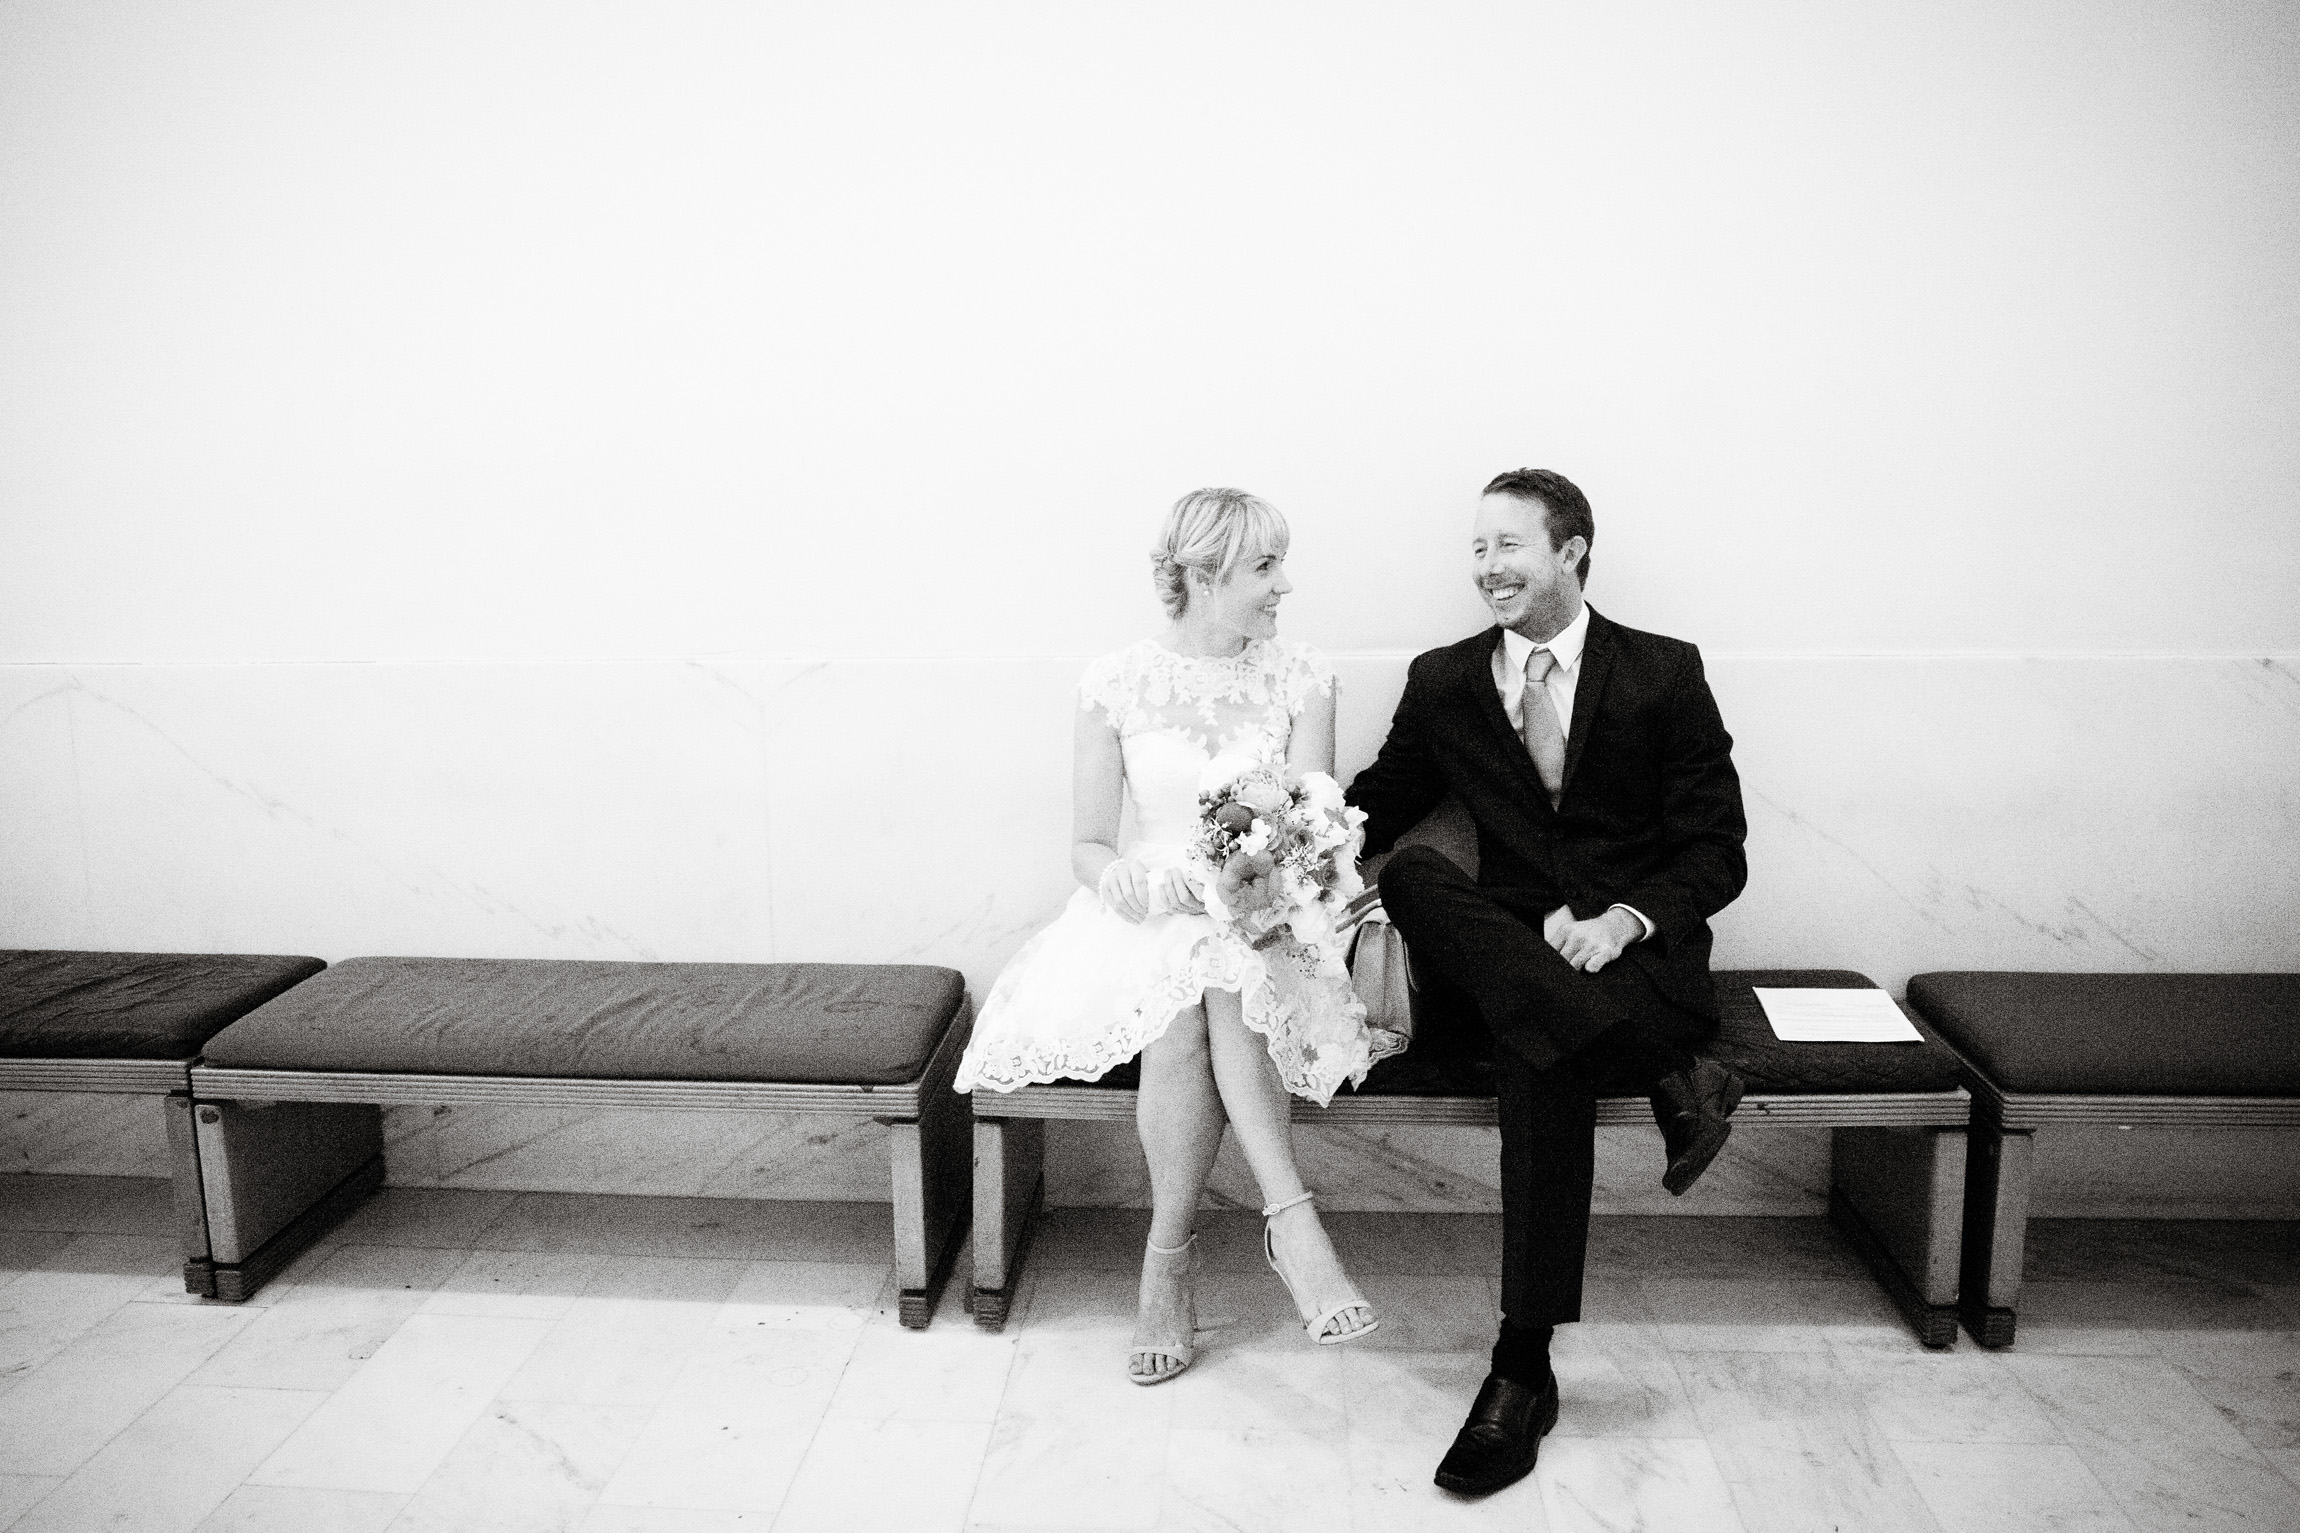 031_janaeshieldsphotography_sanfrancisco_cityhall_weddings.jpg